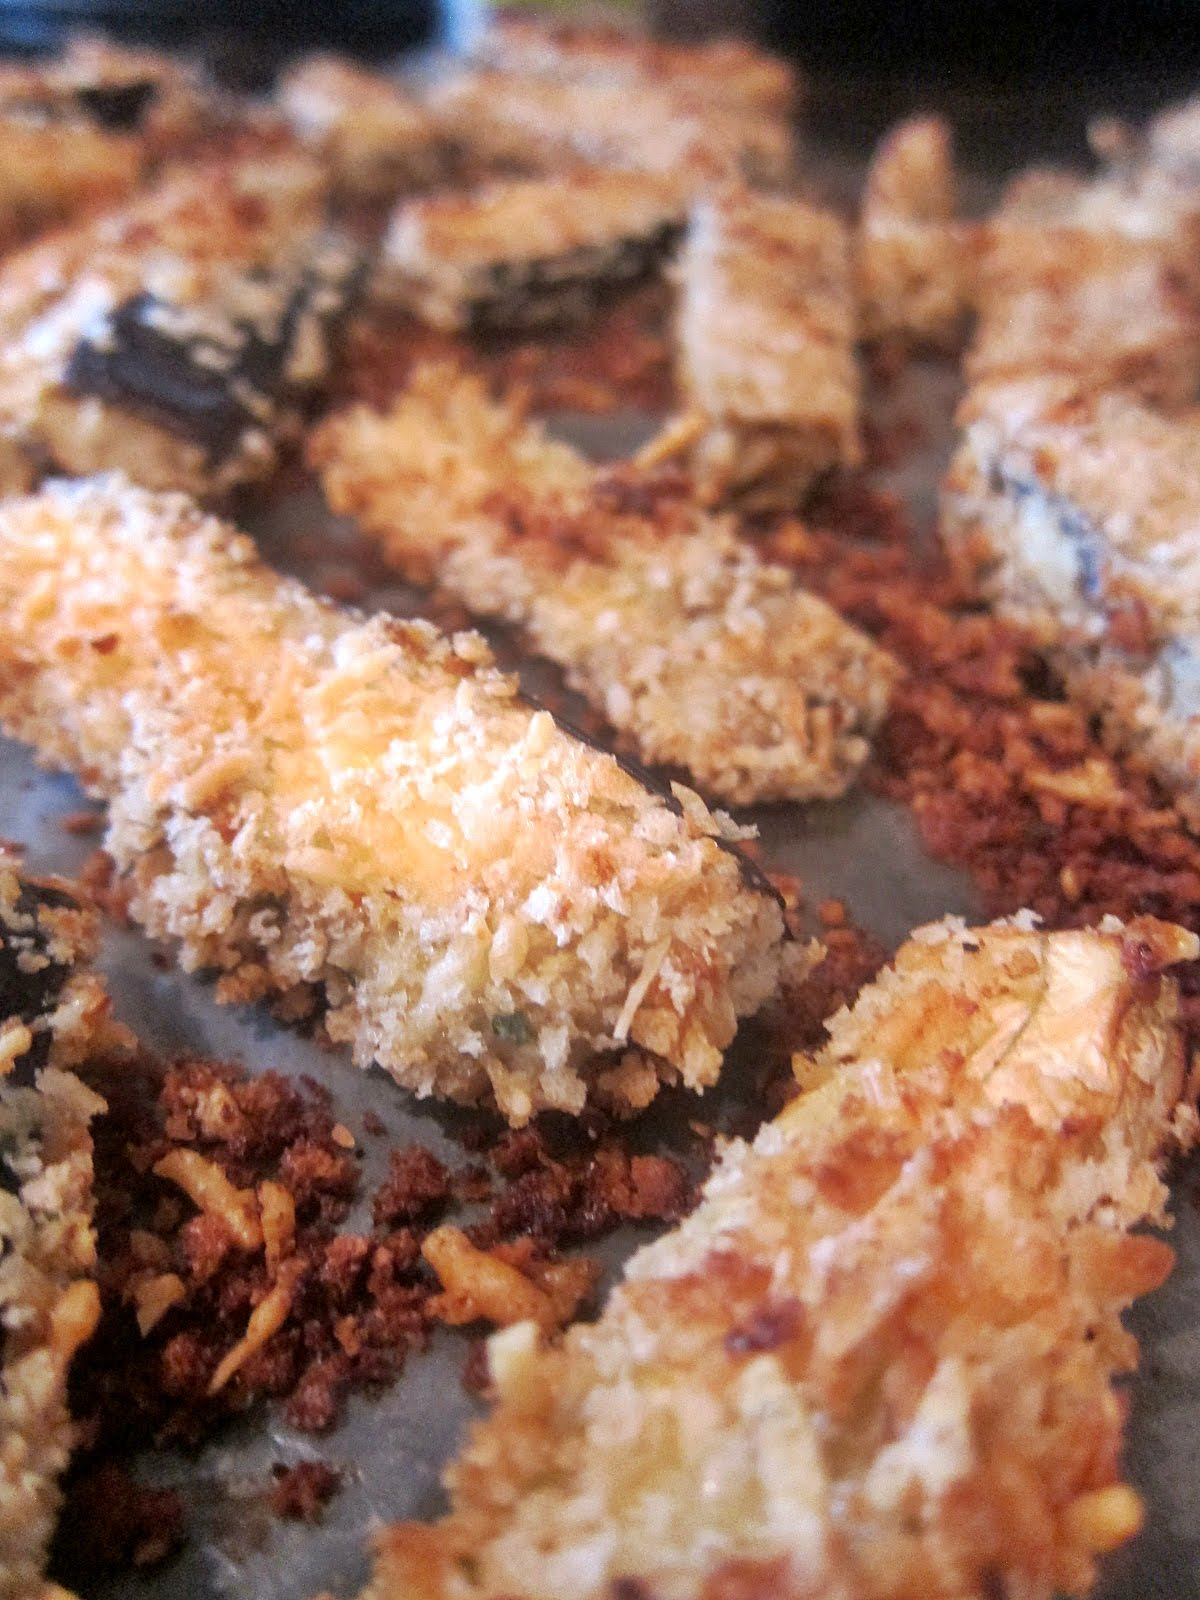 ... baked eggplant sticks baked eggplant sticks recipes dishmaps baked